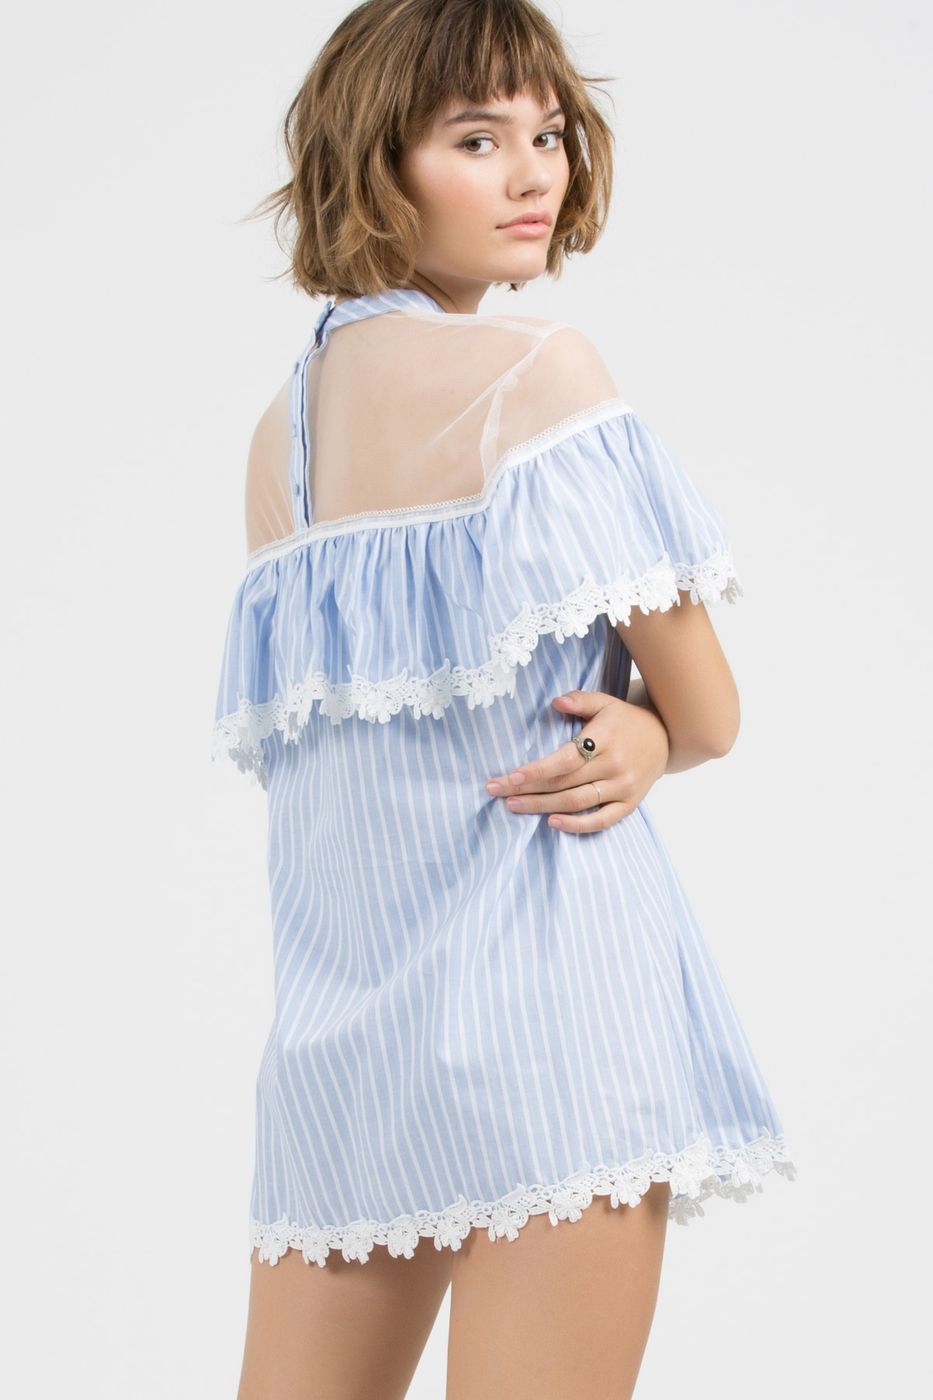 Short Sleeve Round Neck Tunic Top with Mesh Contrast Side